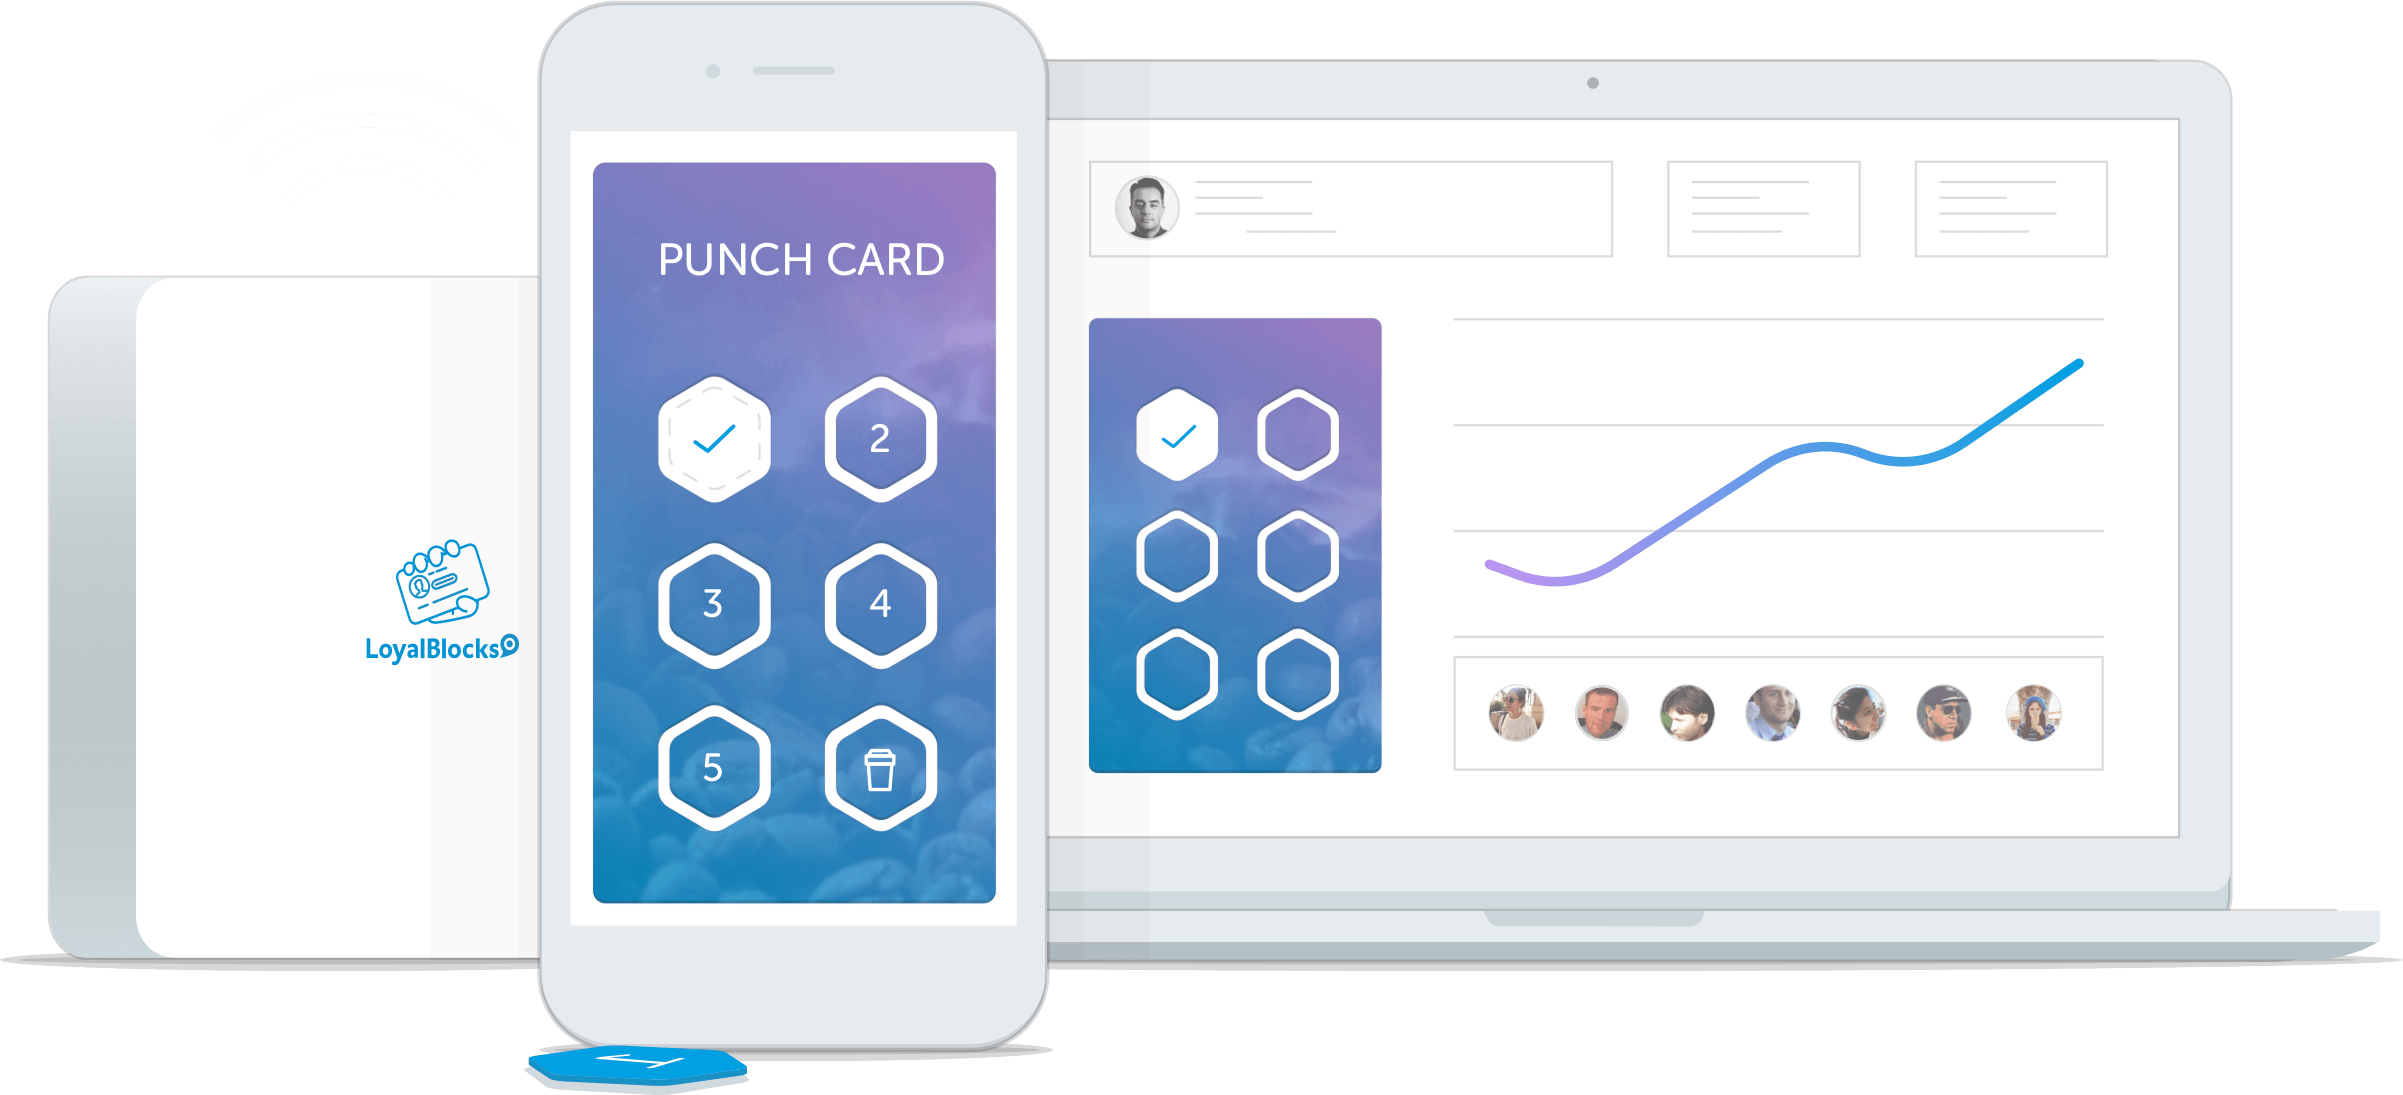 Free Punch Card App For Your Business Punch Cards App Cards